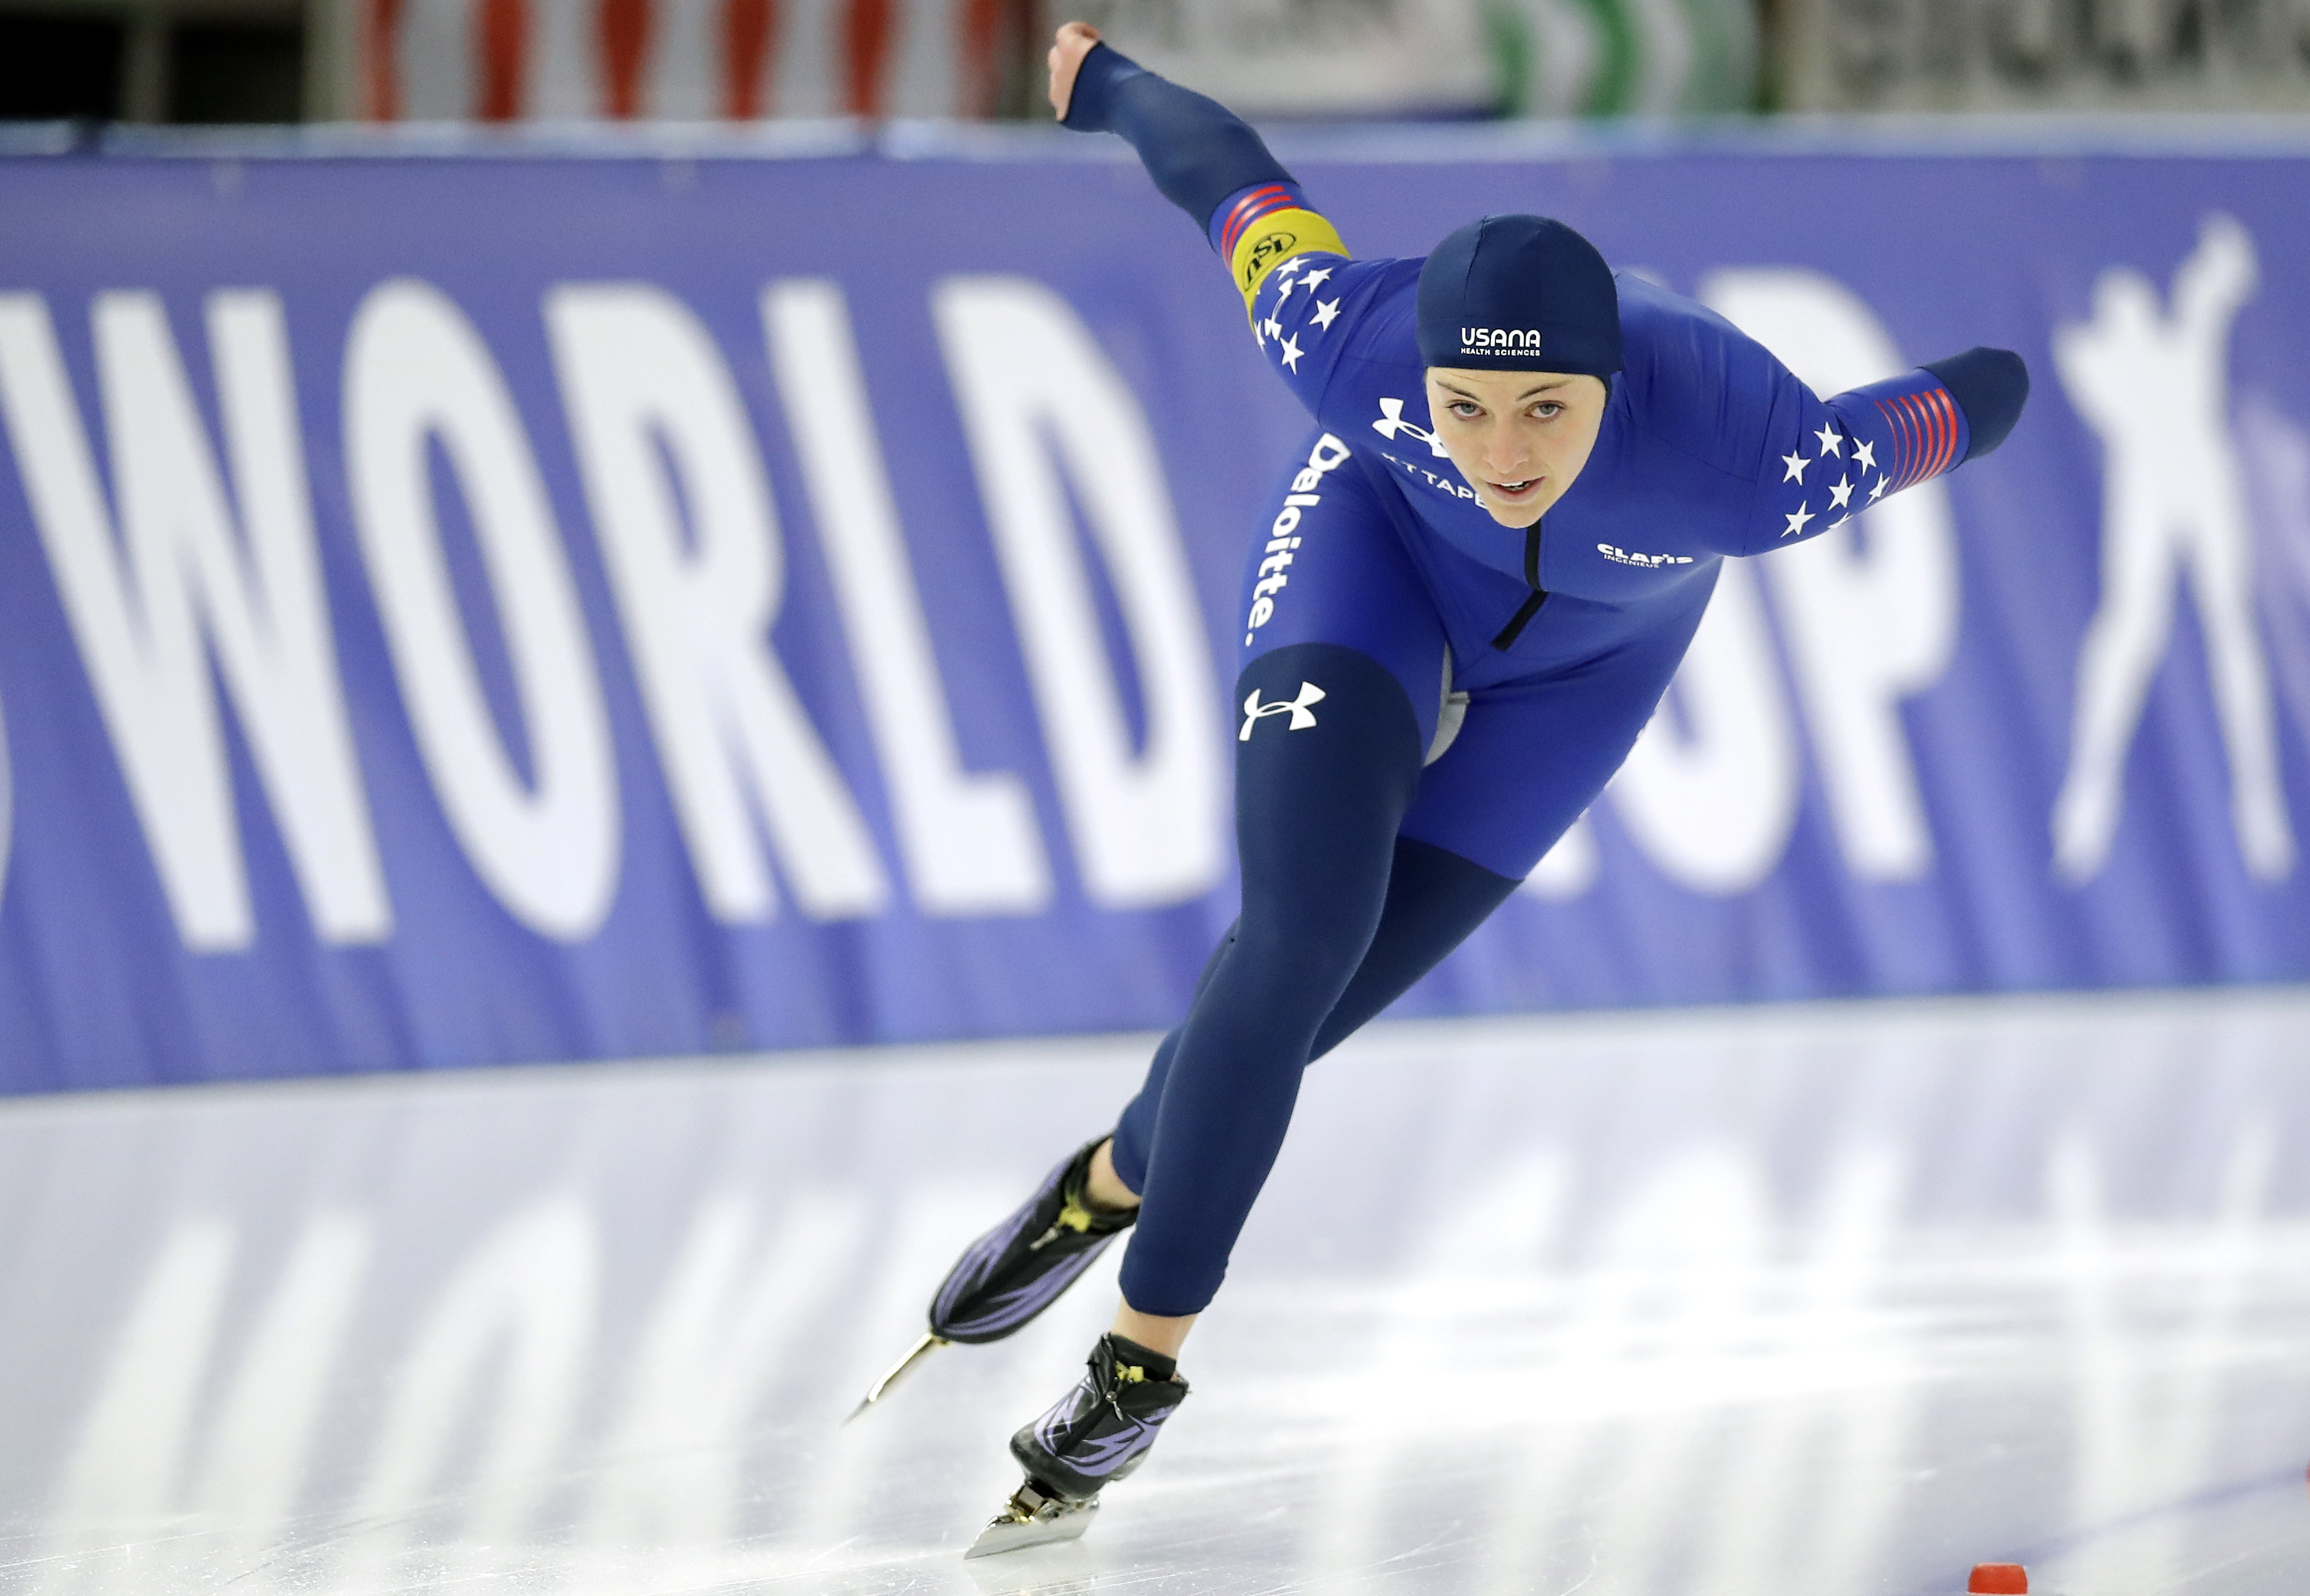 USA's Heather Bergsma competes during the woman's 1000 meters race of the Speed Skating World Cup in Berlin, Germany, Sunday, Jan. 29, 2017. (AP Photo/Michael Sohn)